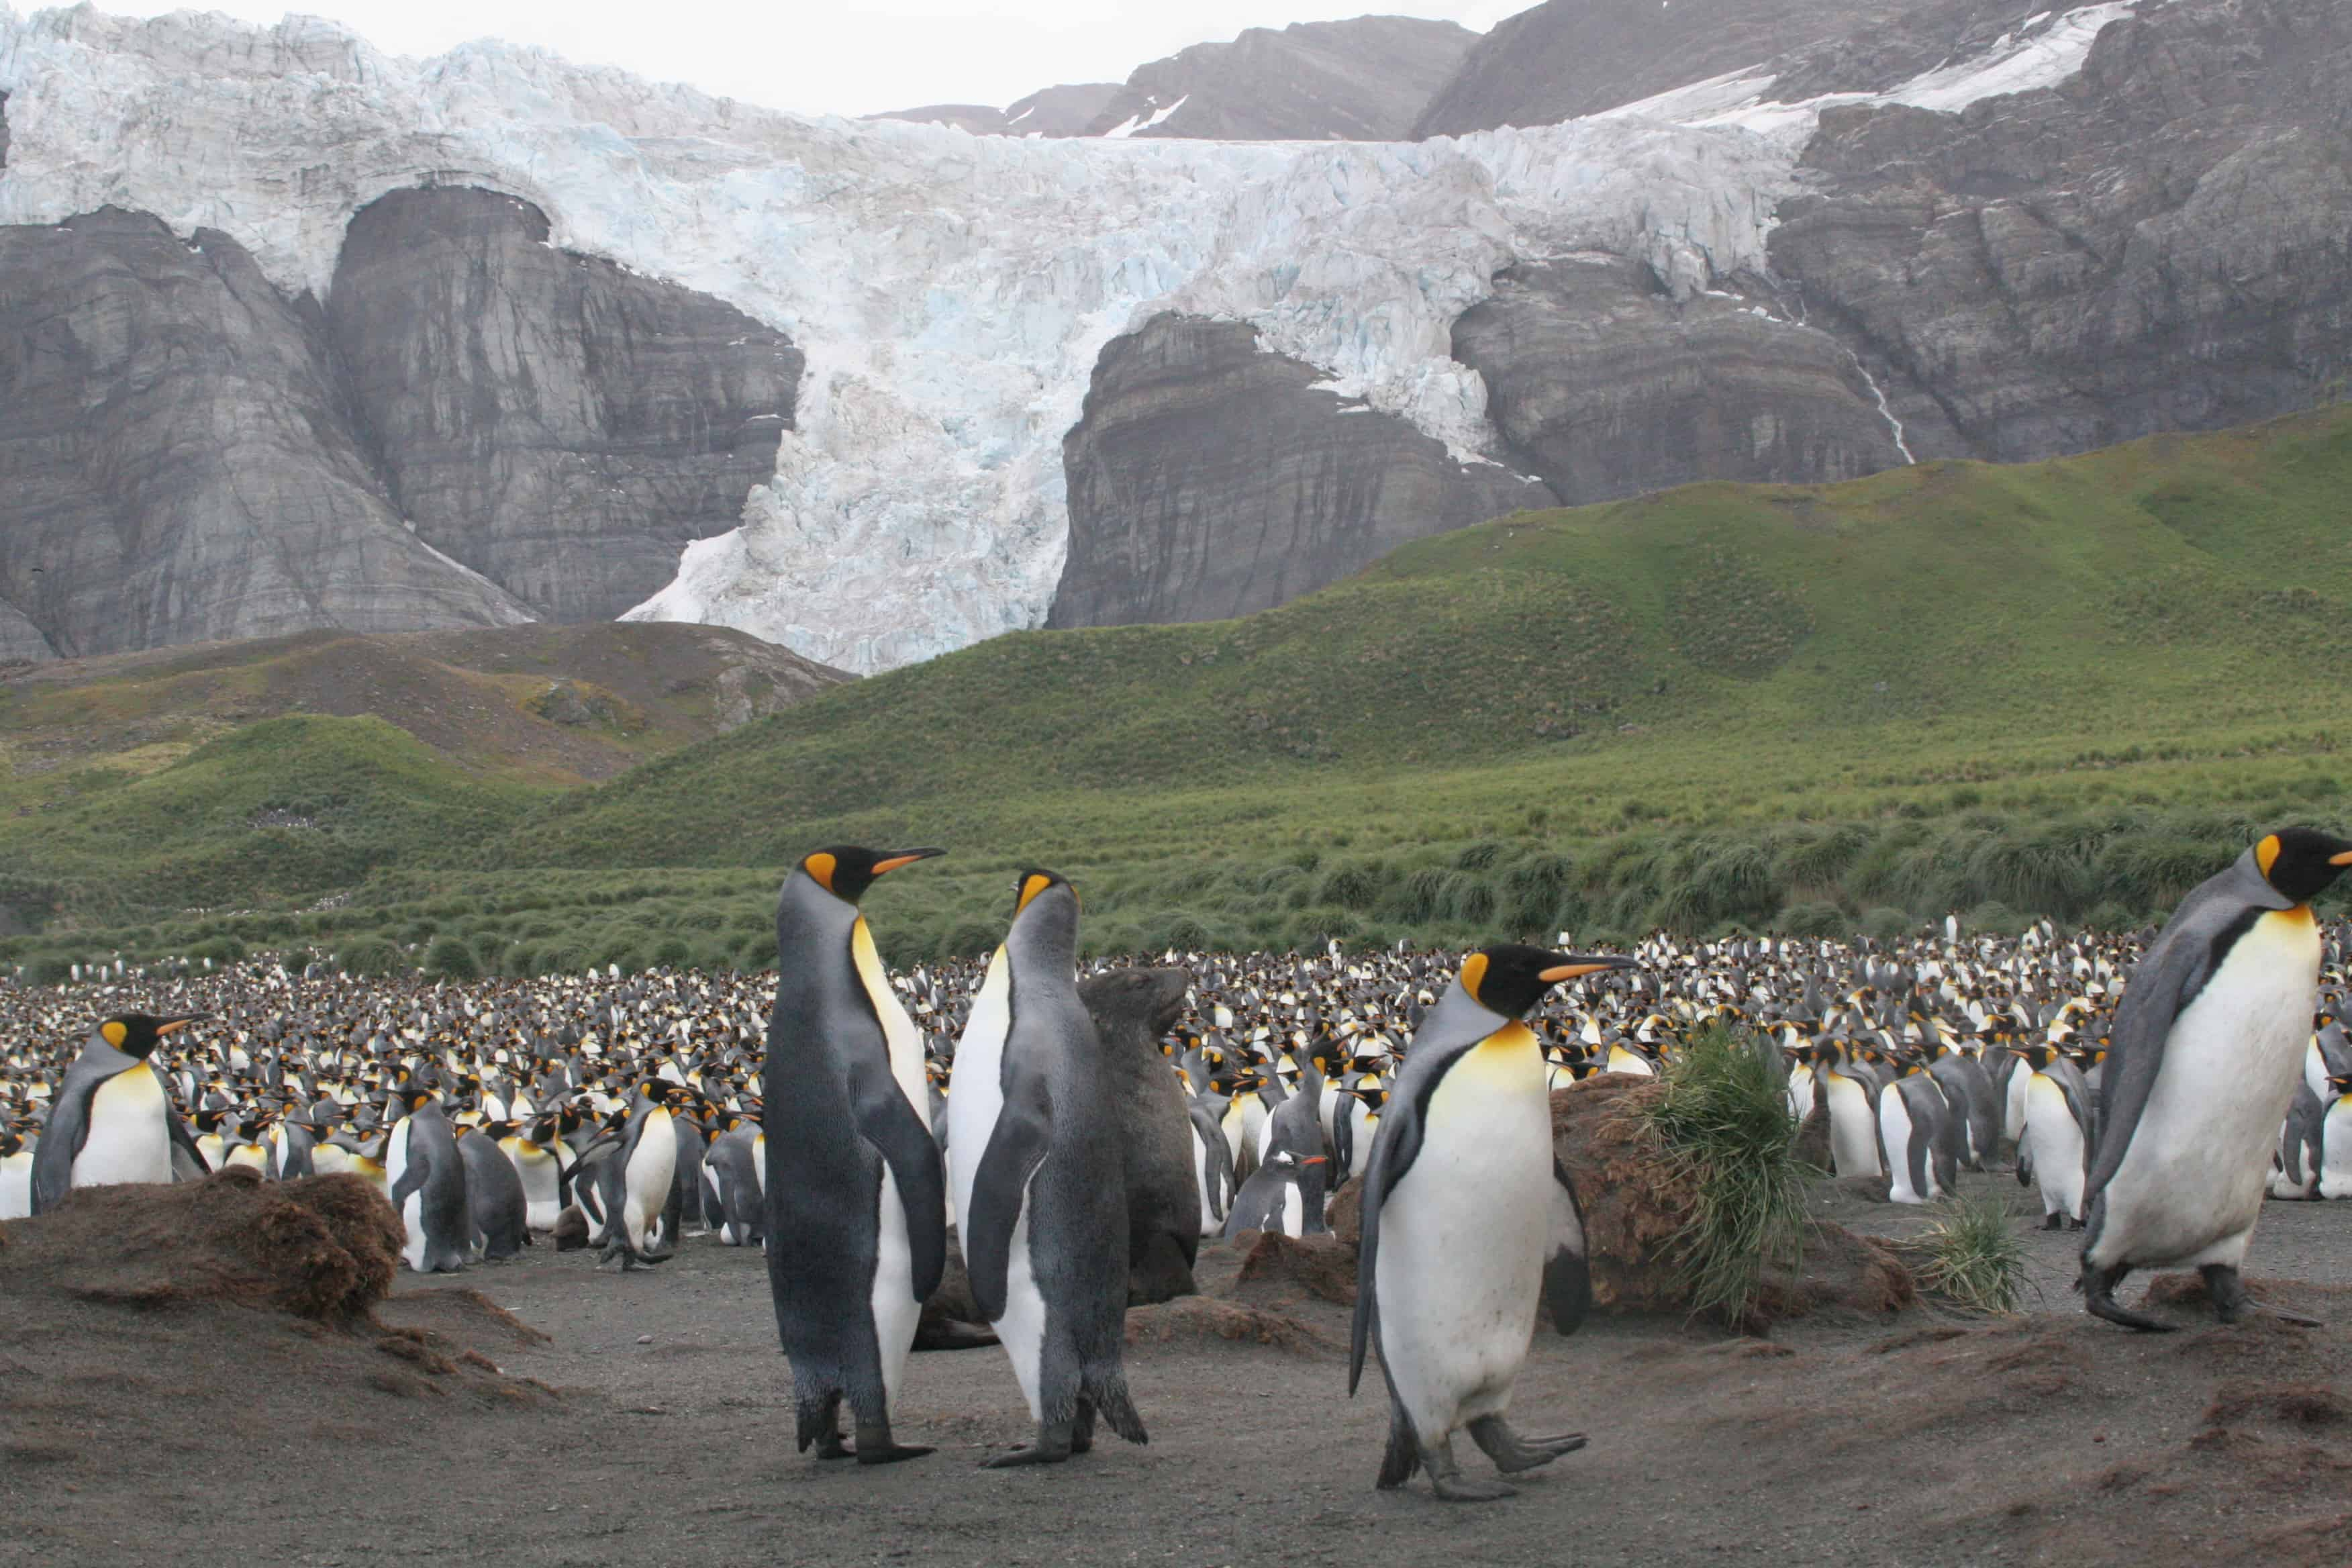 King penguin colony, on NE coast of South Georgia below a glacier. Copyright: Dr Mike Pienkowski